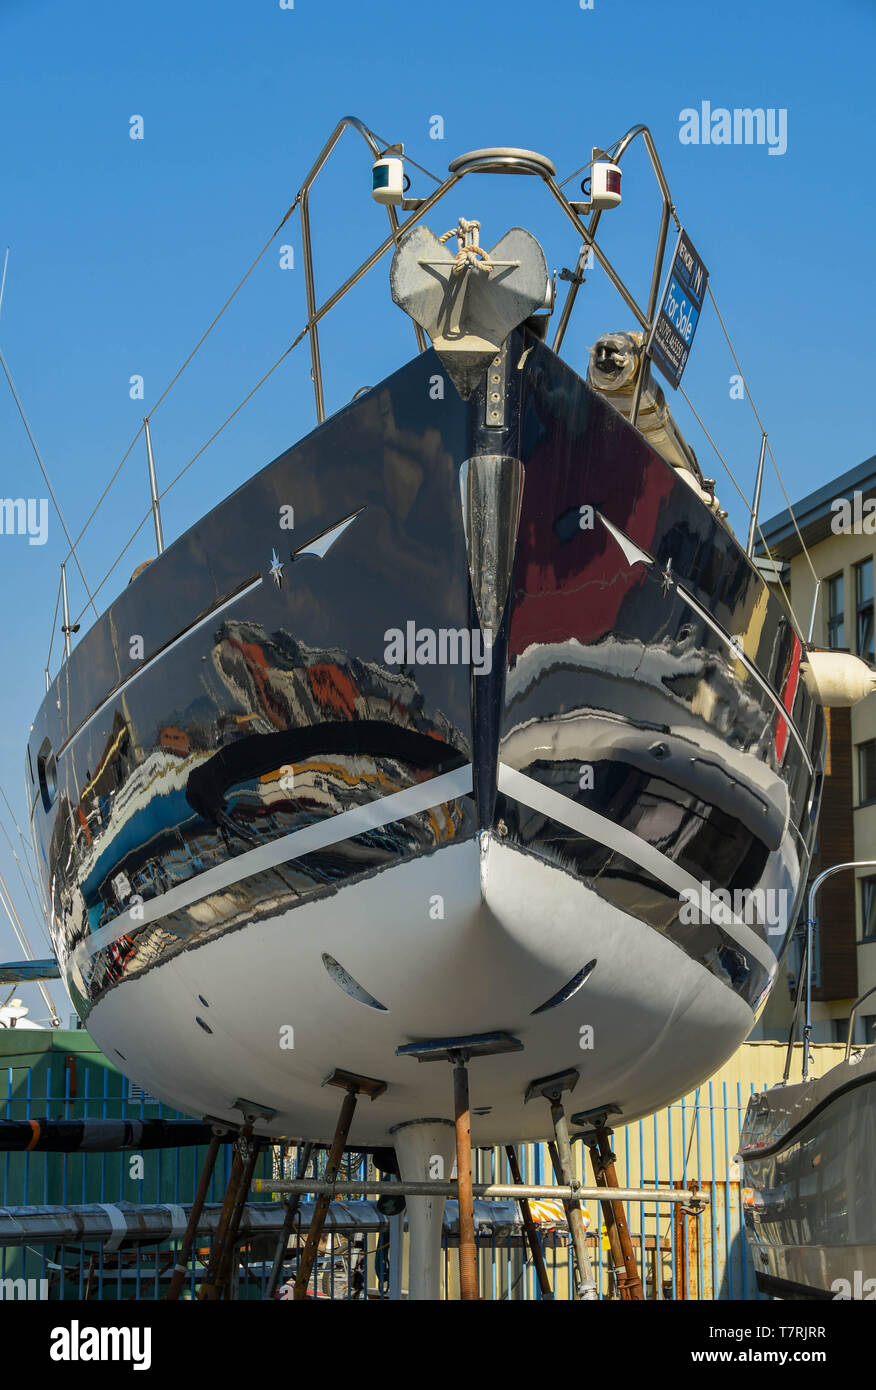 SWANSEA, WALES - JULY 2018: Racing yacht with a polished hull on sale in a boatyard in Swansea marina Stock Photo